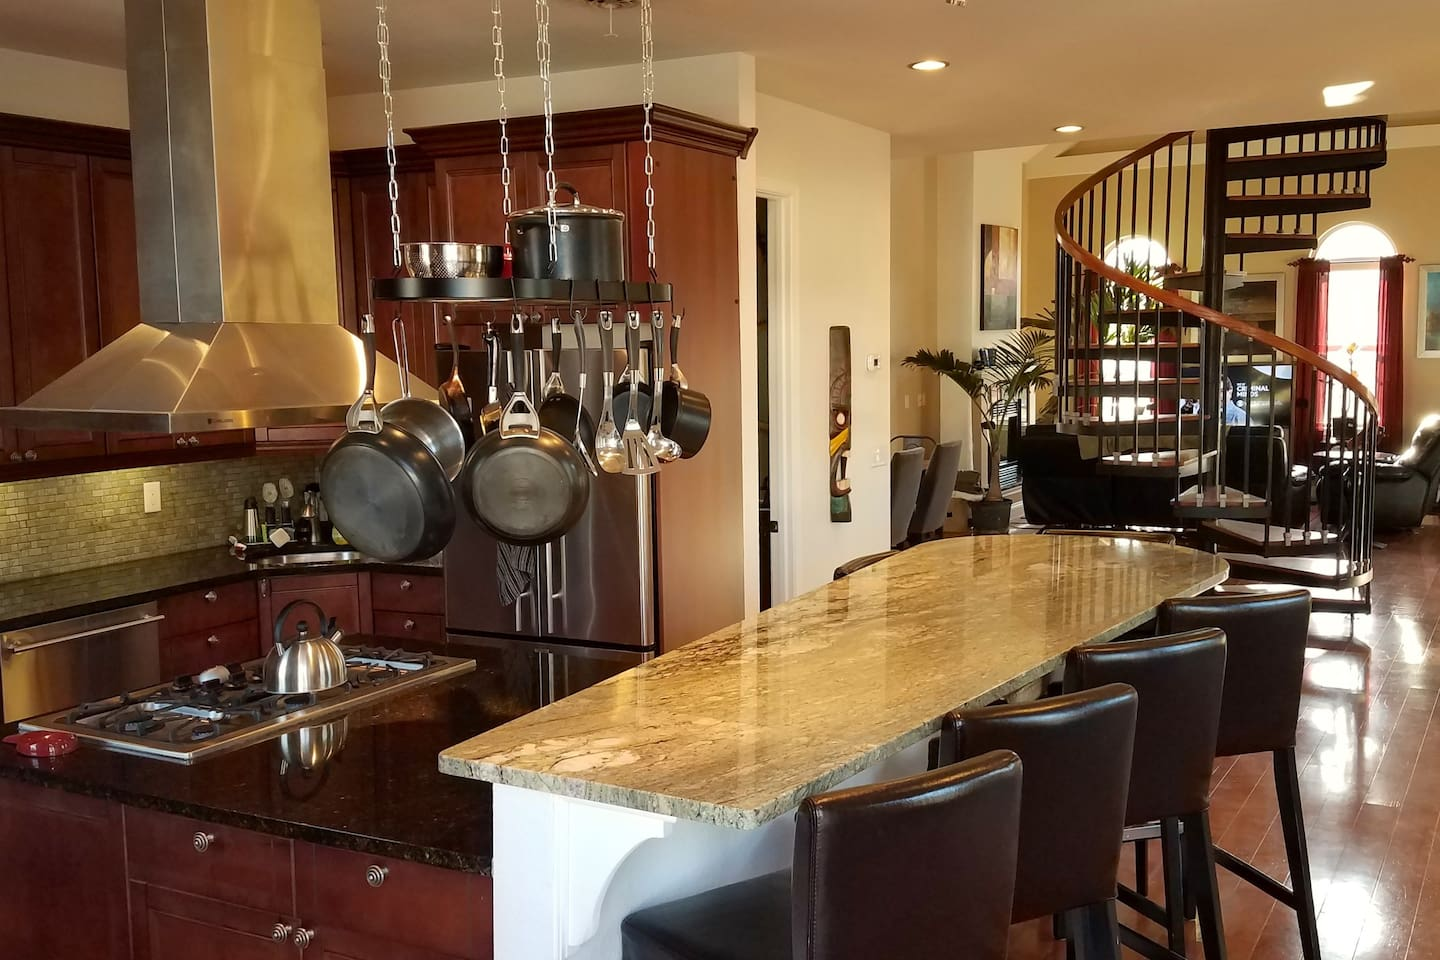 Main level includes Gourmet Kitchen, Half-Bath, Dining, Entertainment, Fireplace, and Office area in open floor plan.